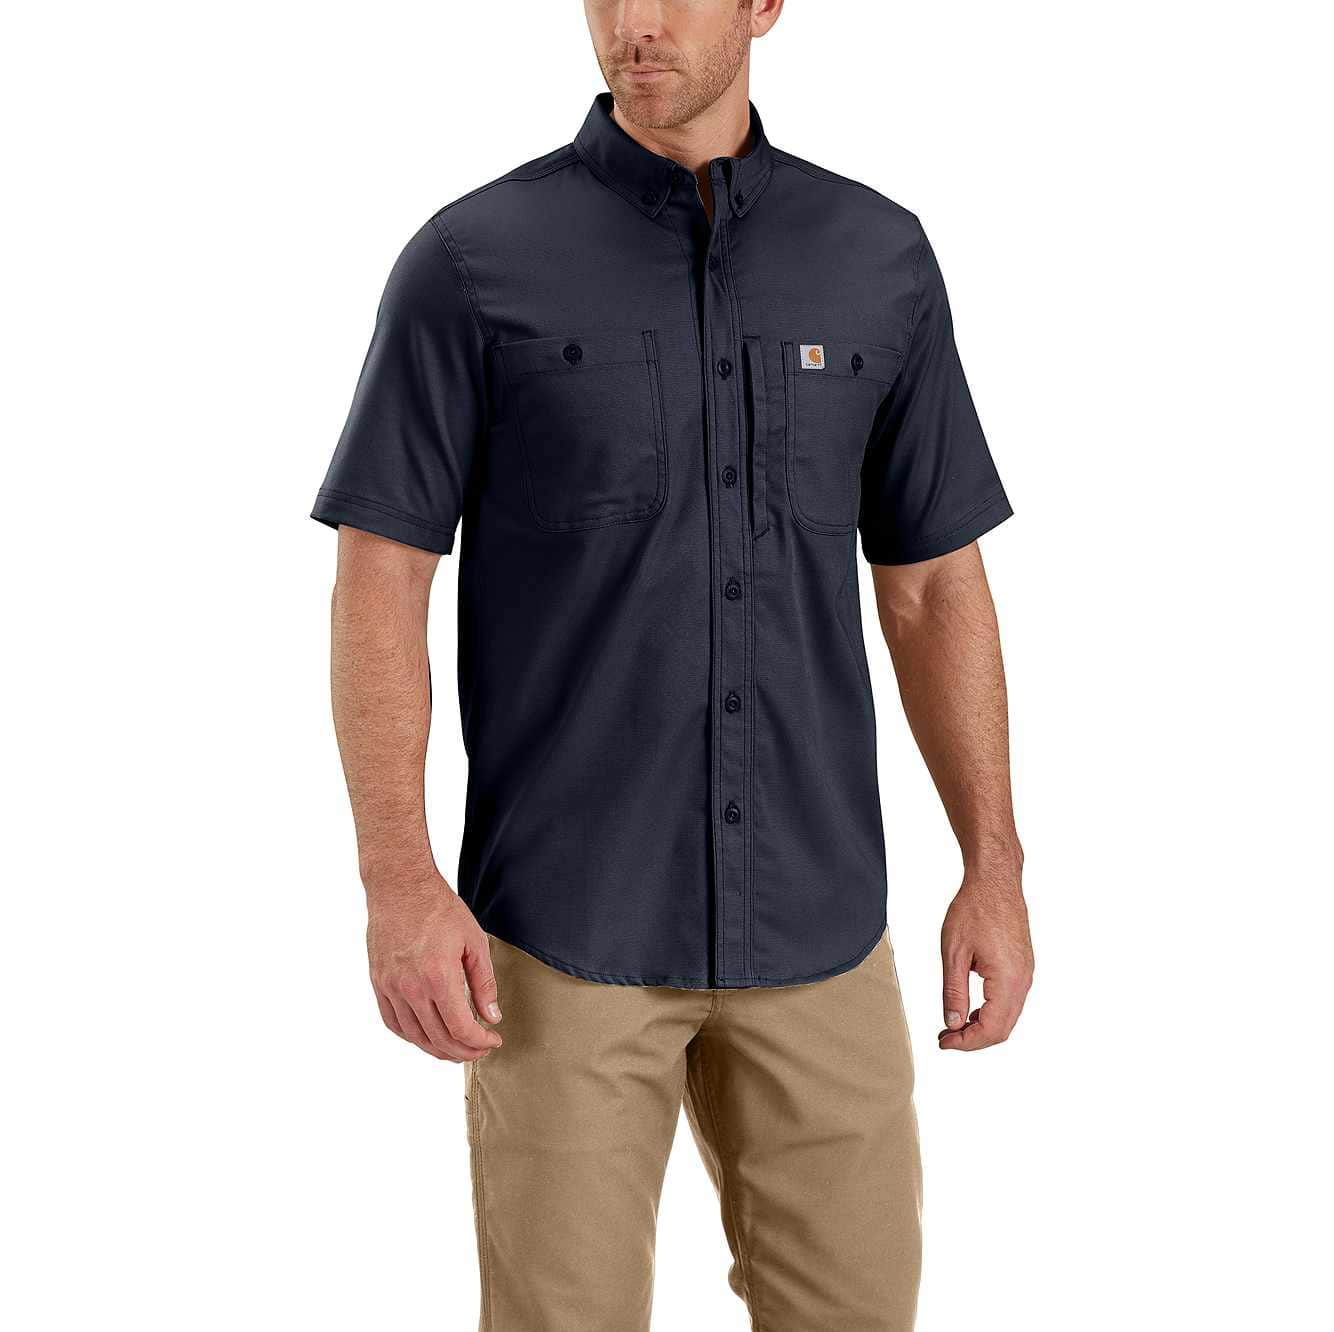 Picture of Rugged Professional™ Series Men's Short-Sleeve Shirt in Navy